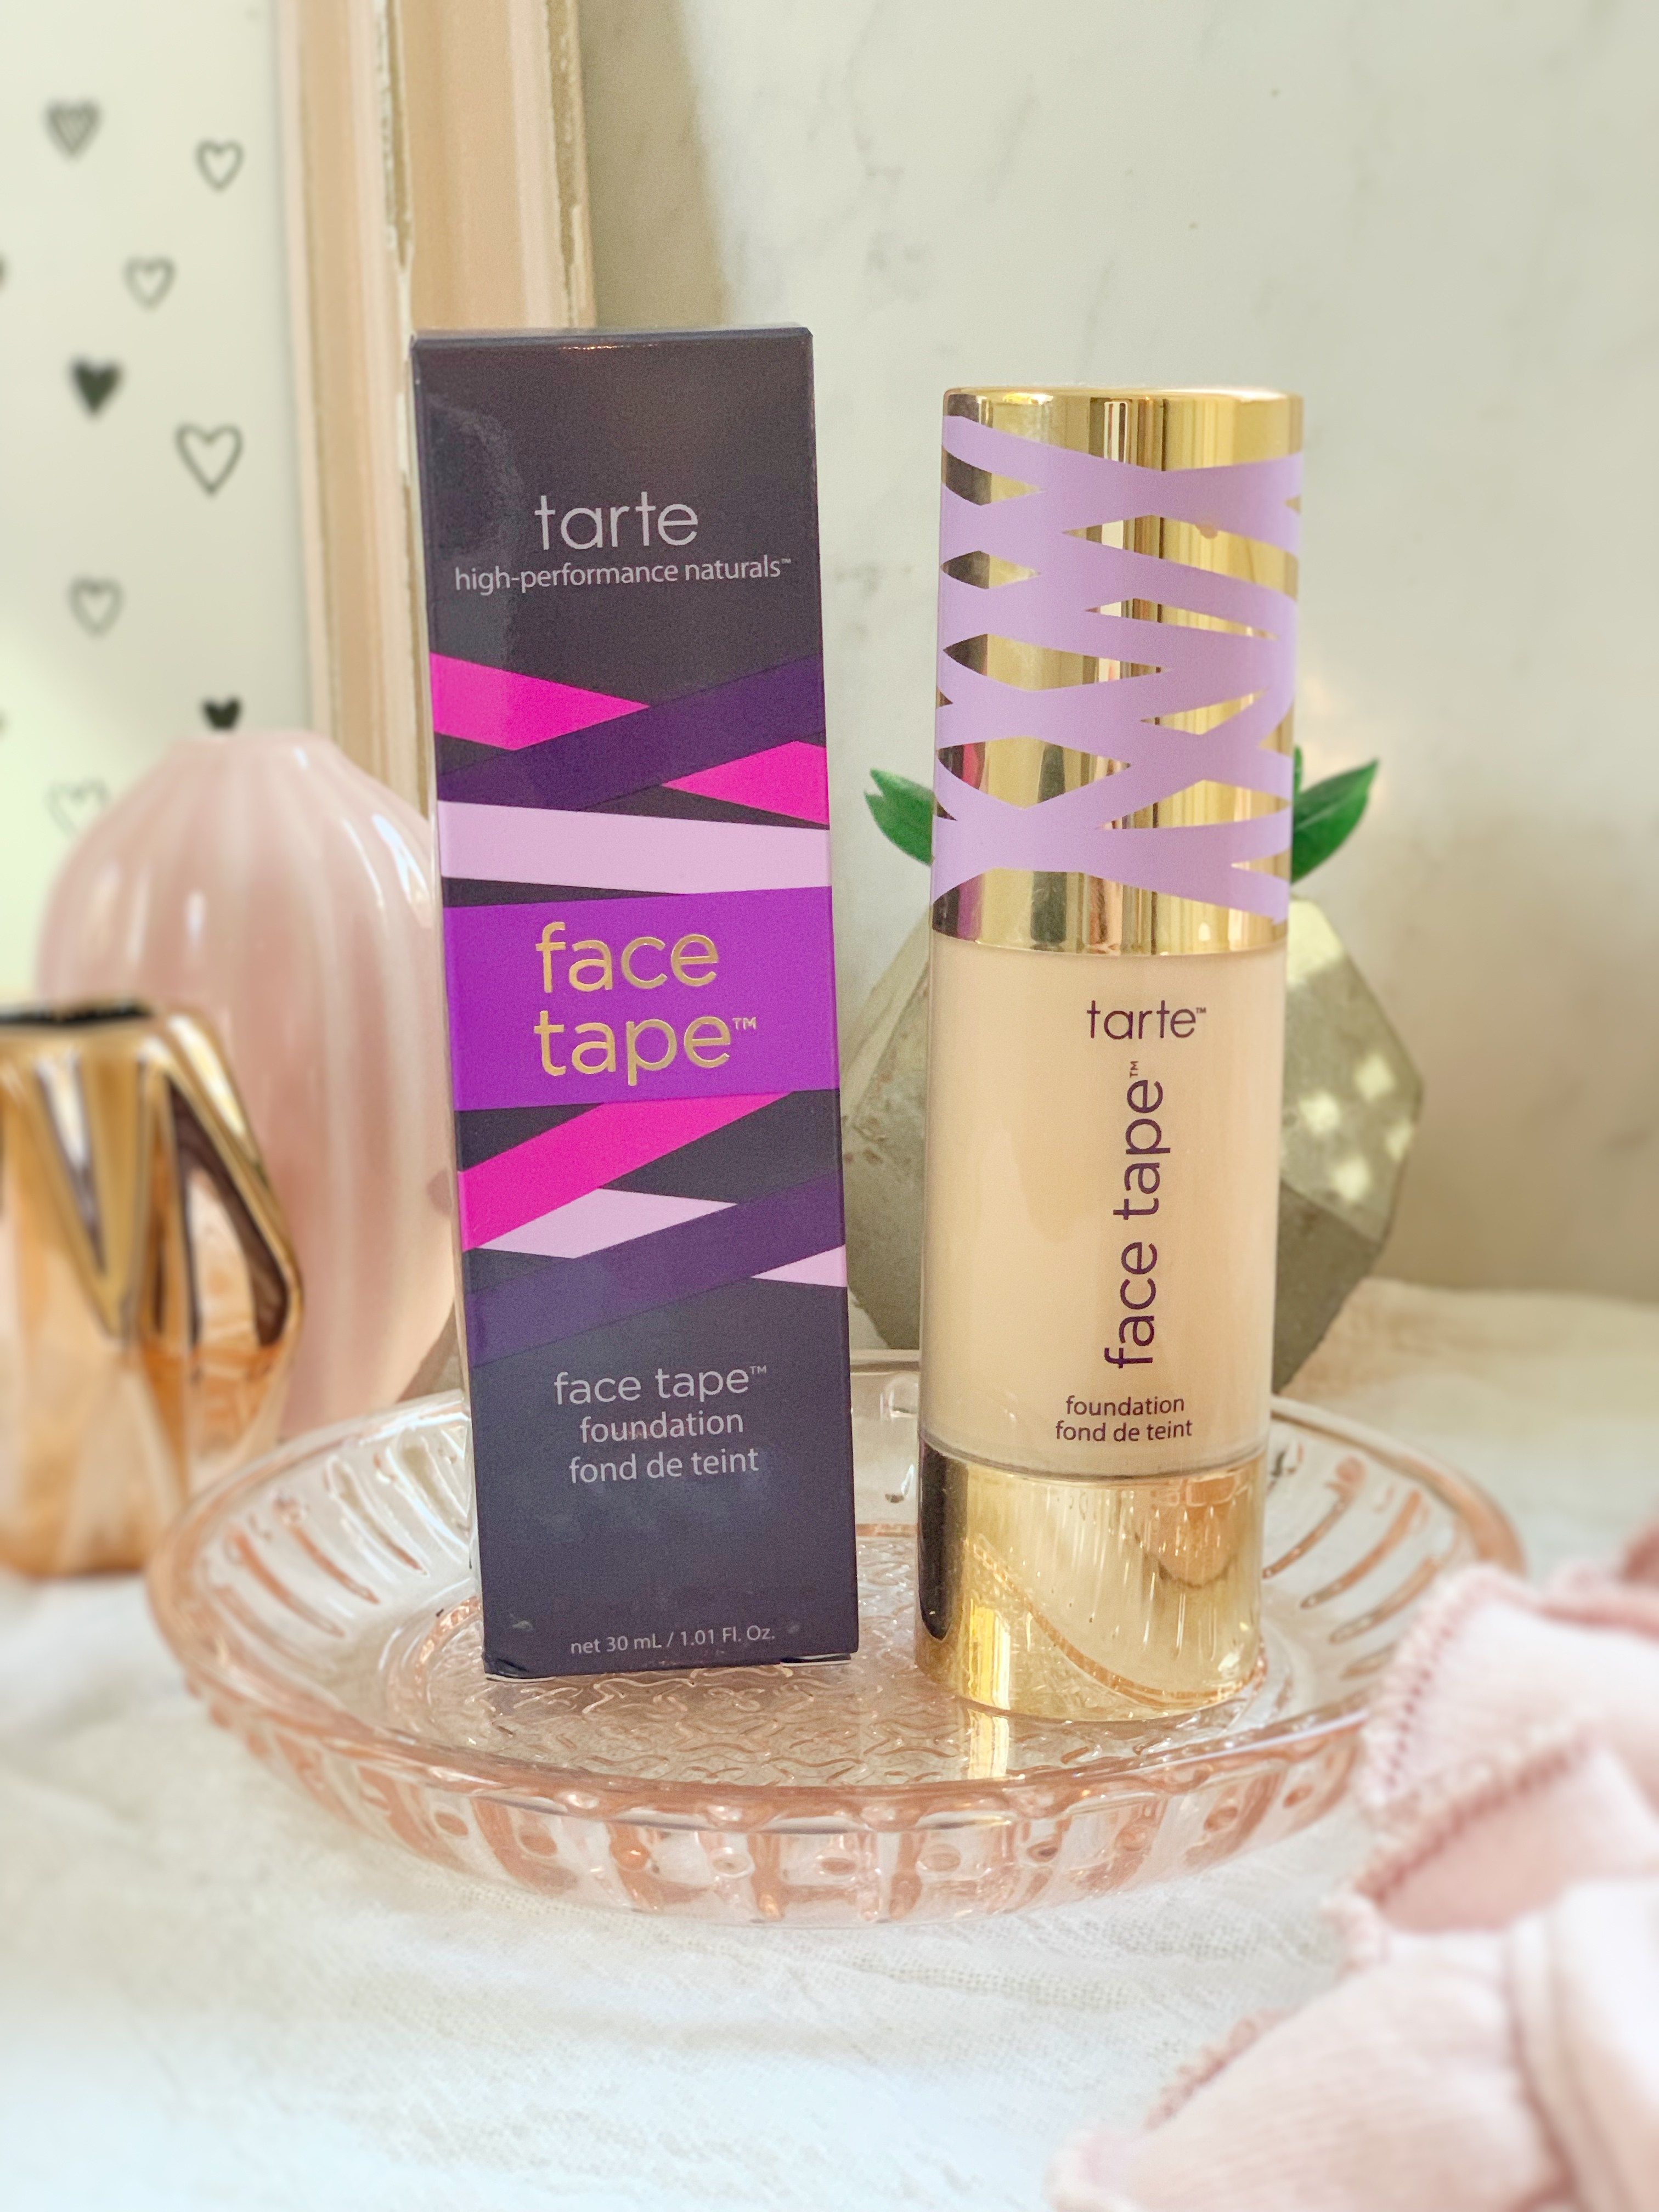 Tarte Face Tape Foundation Review & Thoughts The